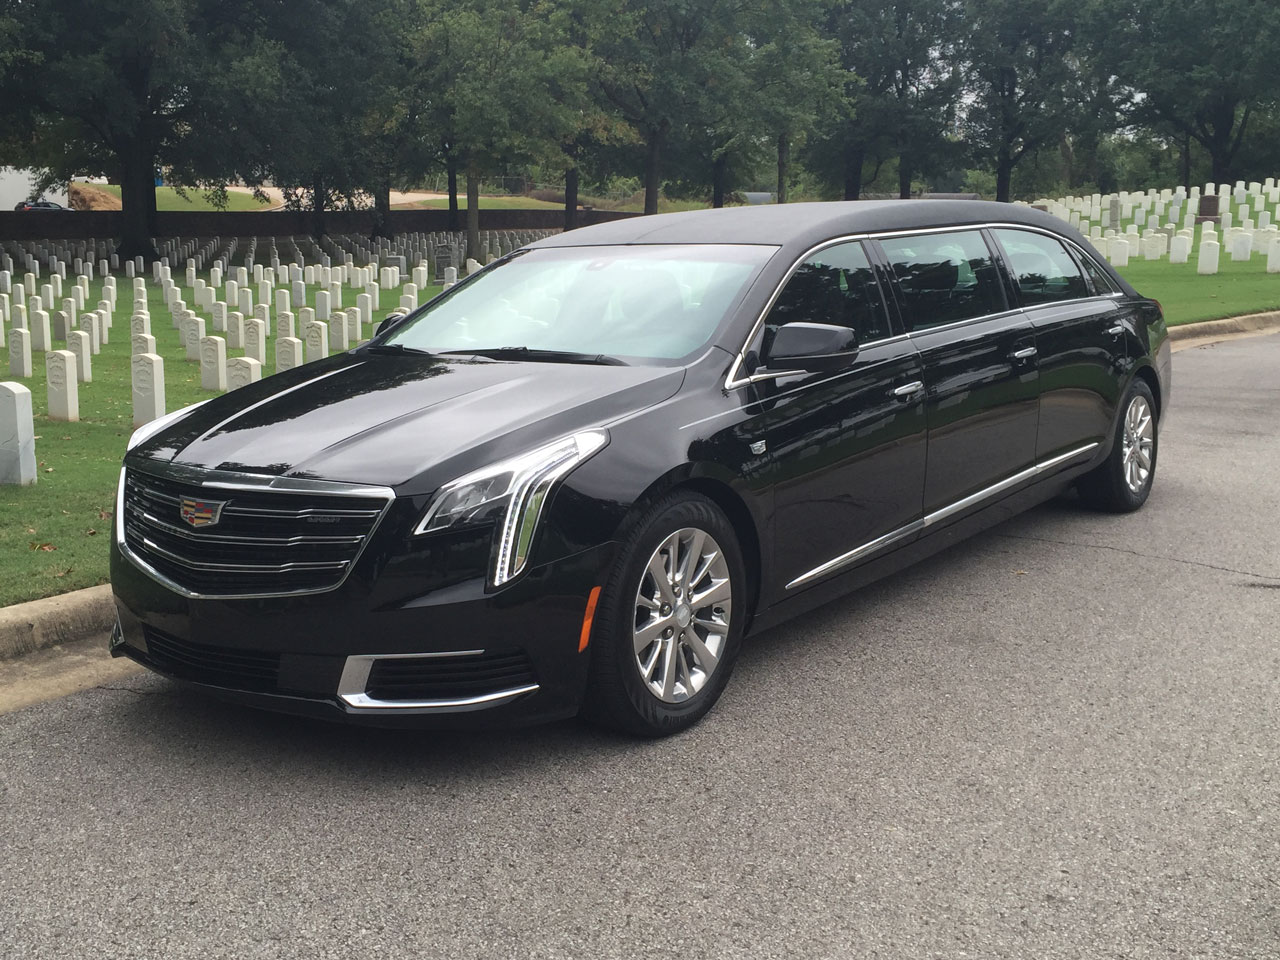 2019 Armbruster Stageway Cadillac L6 52 Stretch Limousine 14